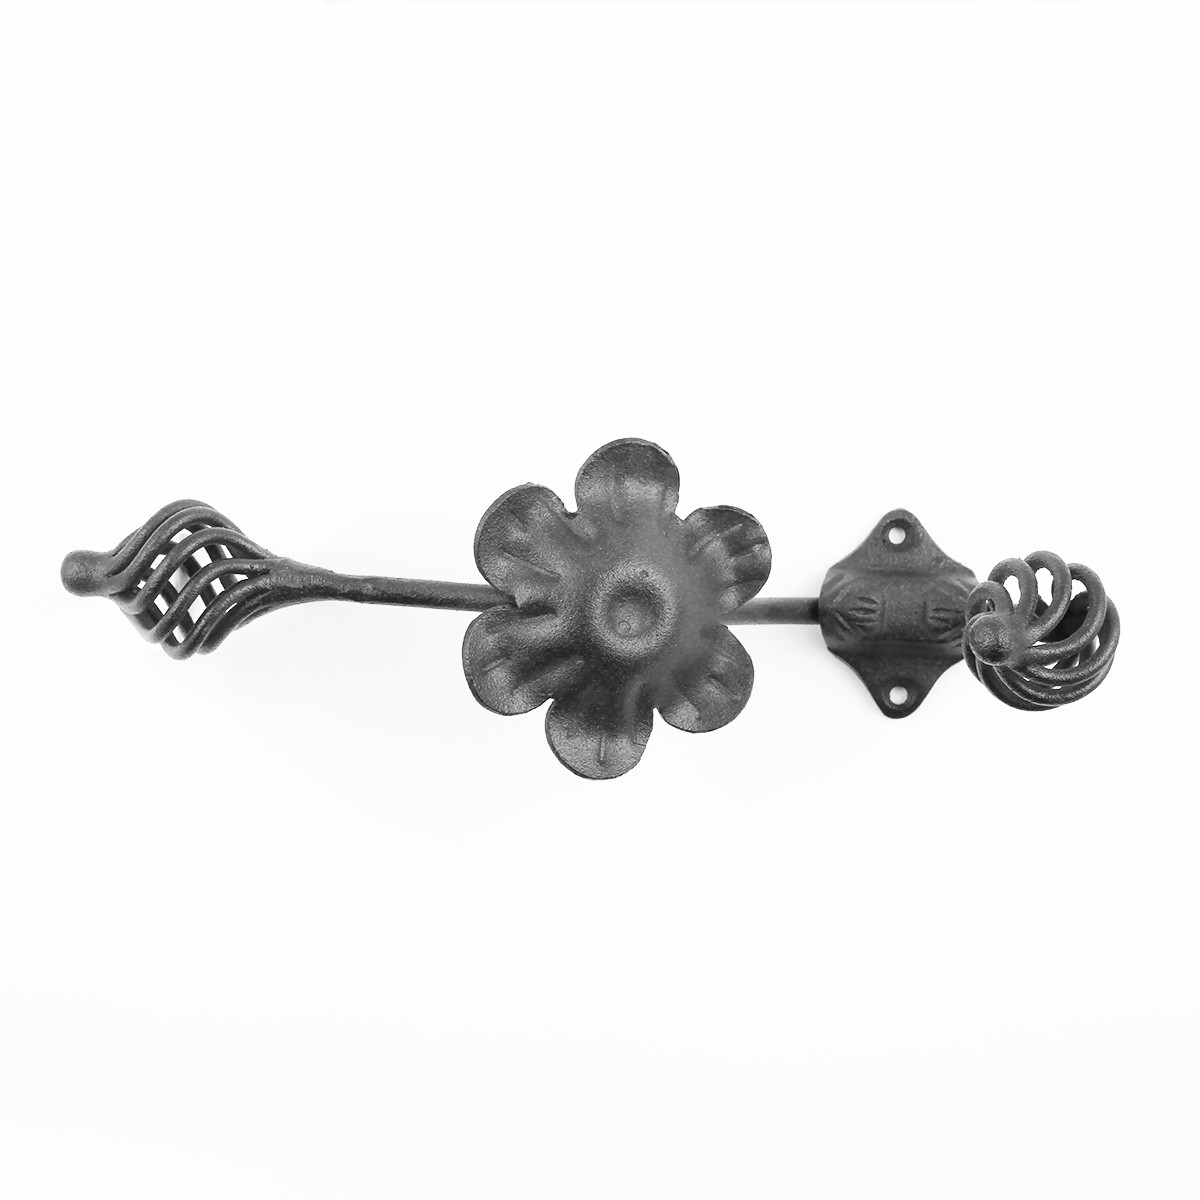 Iron Decorative Double Hook Birdcage 8 Wrought Iron Robe Hooks Black Double Robe Hook Robe Hooks For Bathrooms